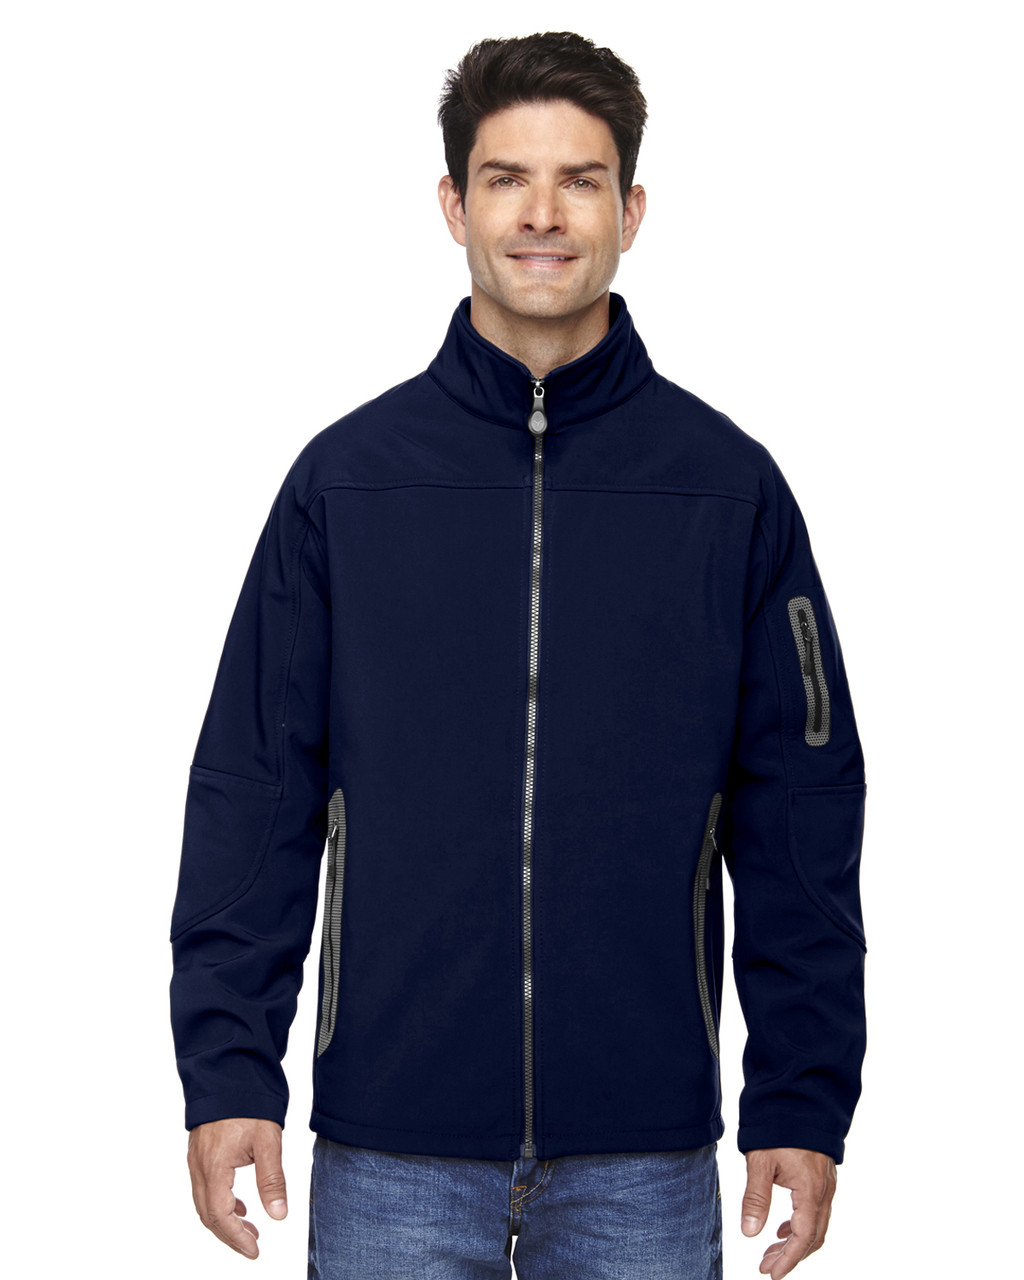 Classic Navy - 88138 North End Men's Soft Shell Technical Jacket   Blankclothing.ca